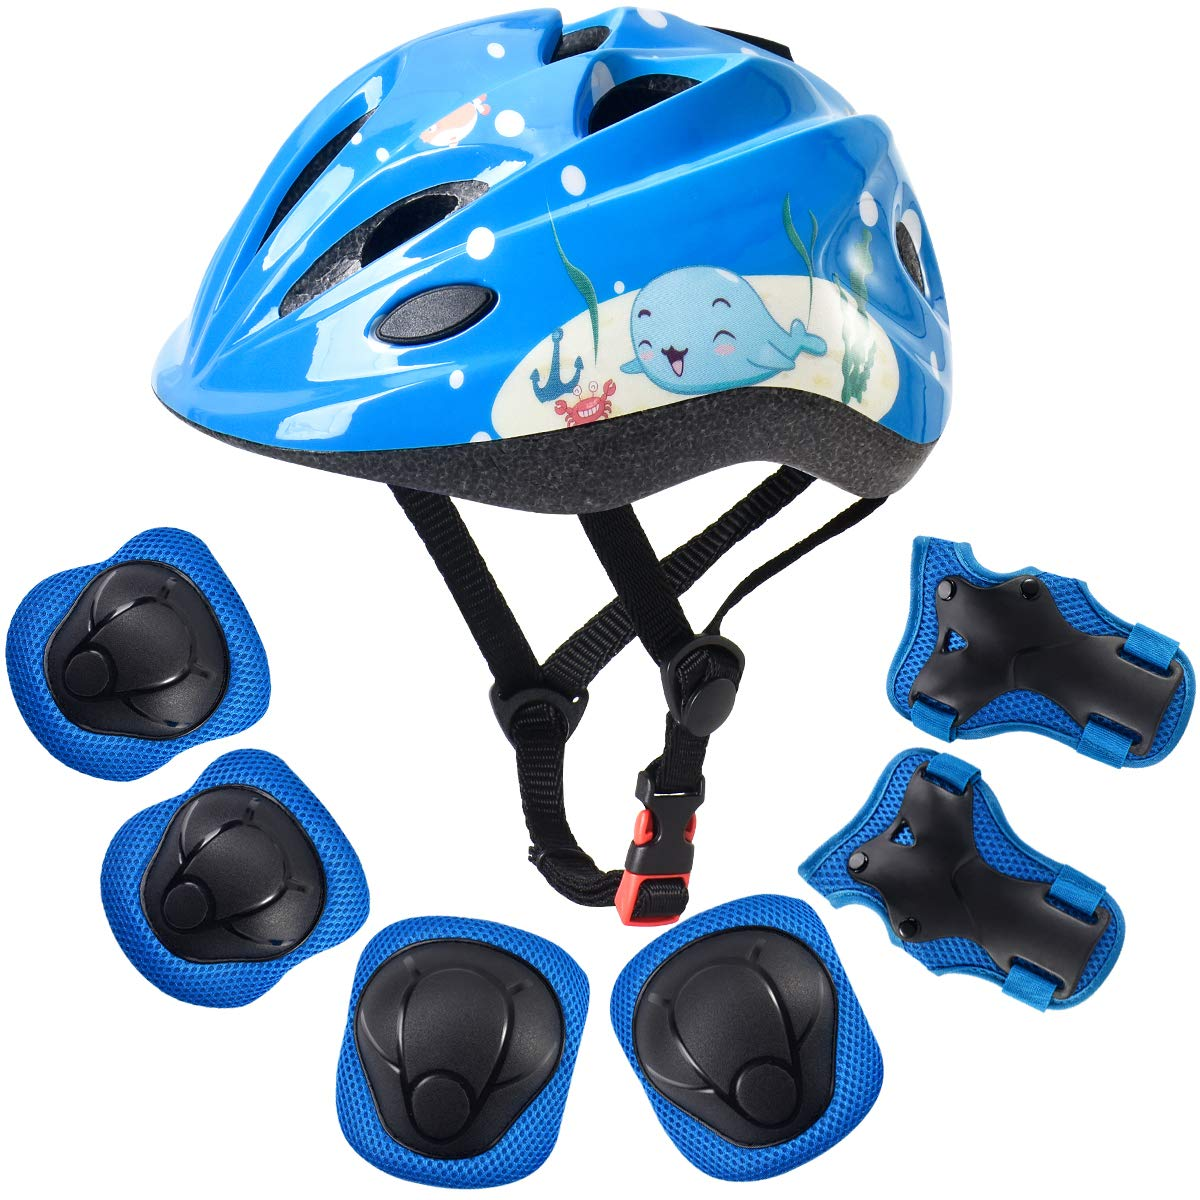 ArgoHome Kids Helmet Protective Gear Set Toddler Helmet Kids Knee Pads for 3-8 Years Toddler Youth Bike Skateboard Helmet Knee Elbow Wrist Pads for Roller Bicycle Bike Skateboard